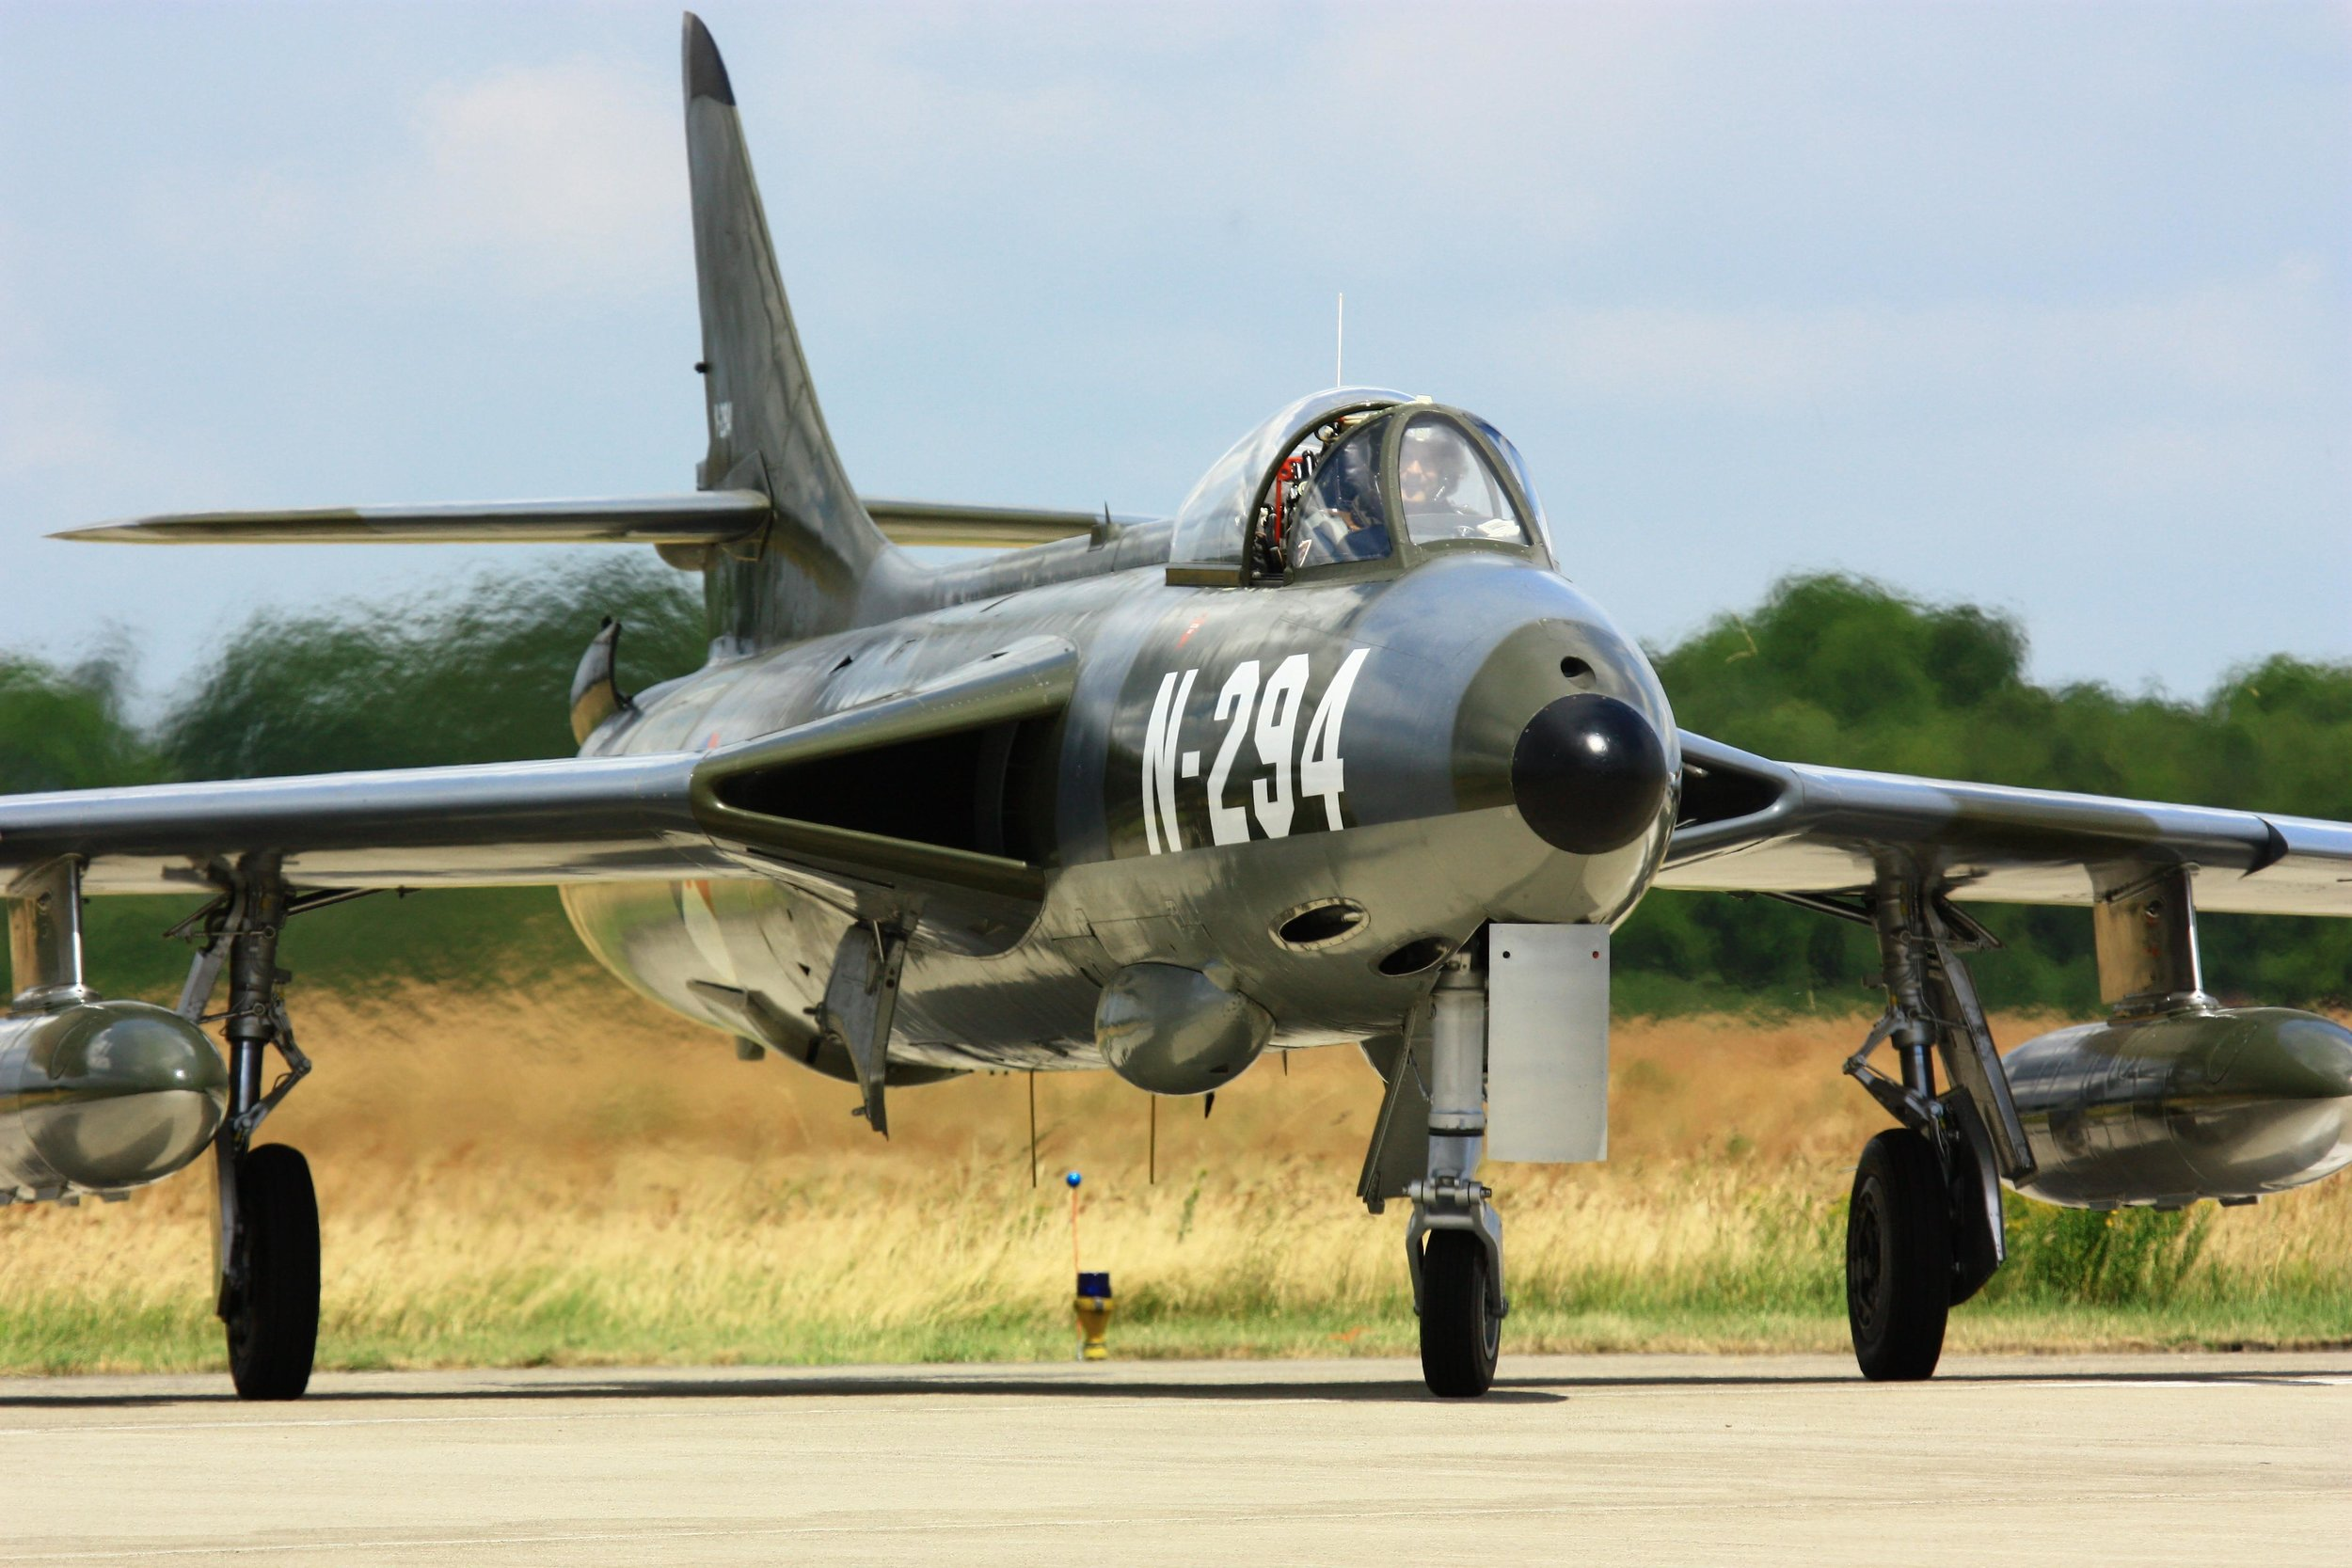 A Hawker Hunter of the historical flight from the Royal Netherlands Air Force.